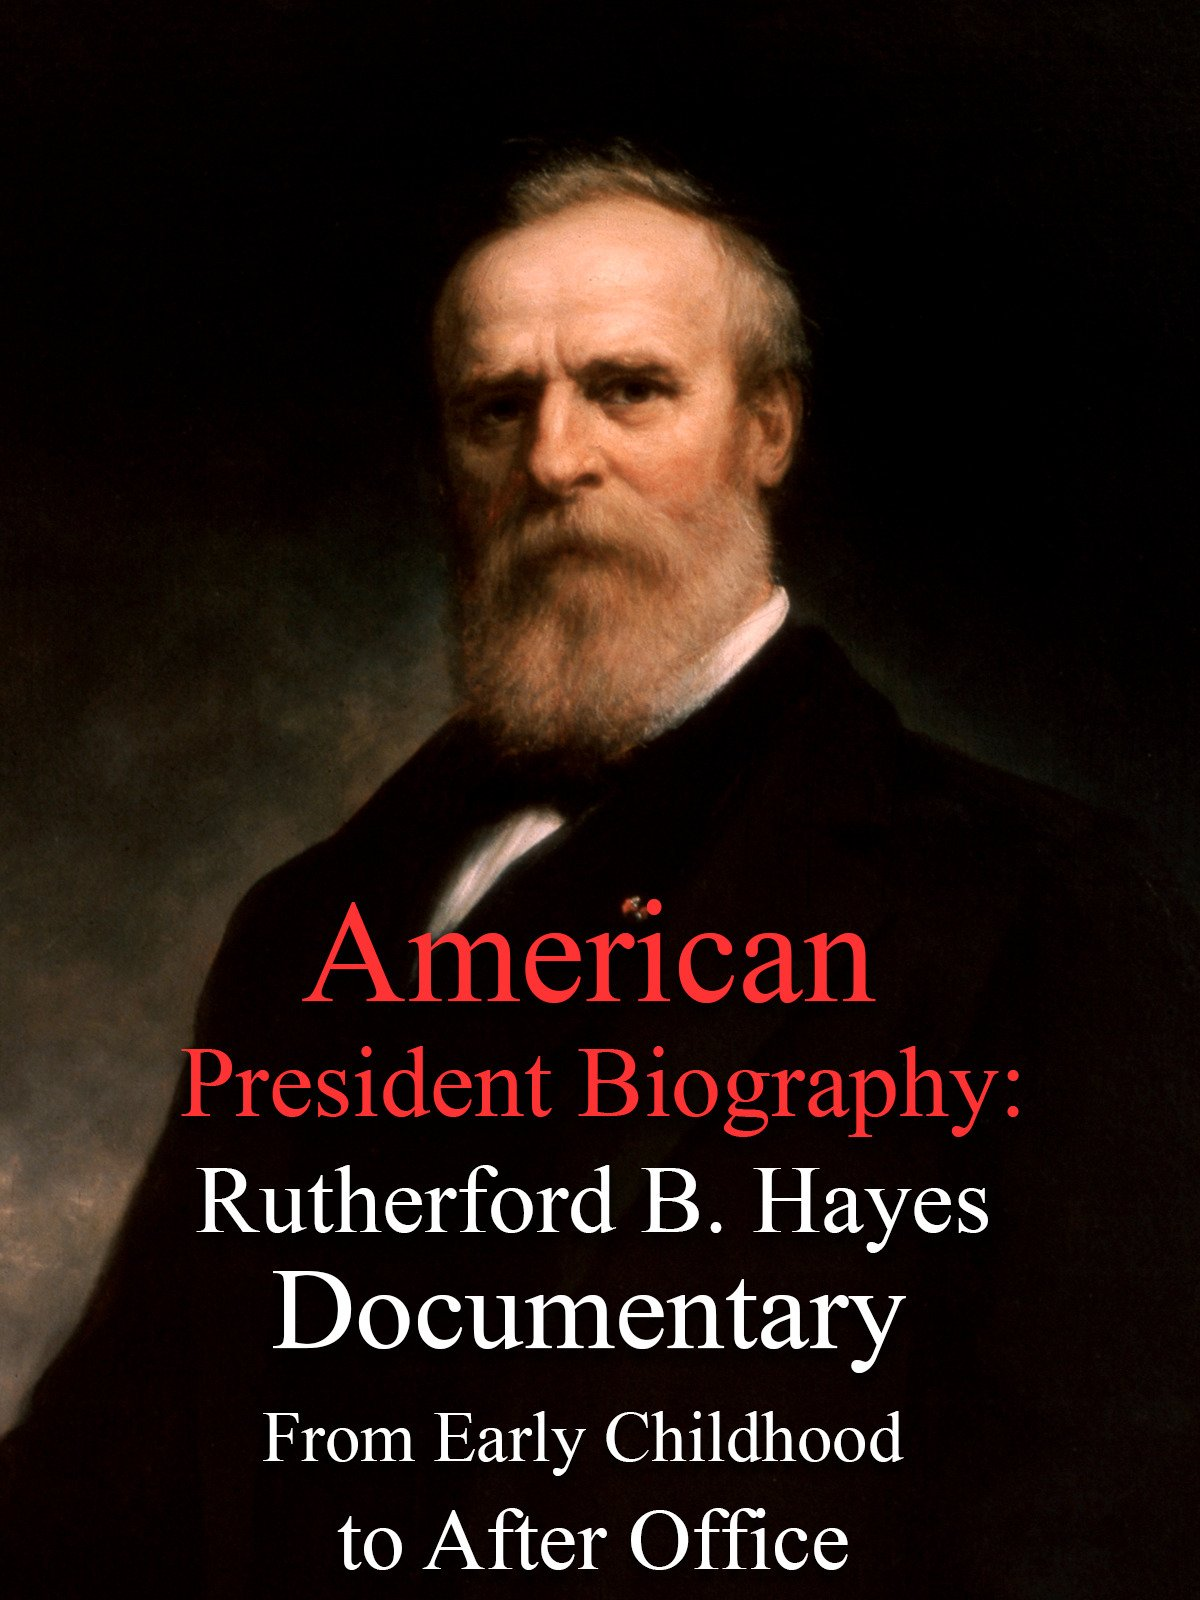 American President Biography: Rutherford B. Hayes Documentary From Early Childhood to After Office